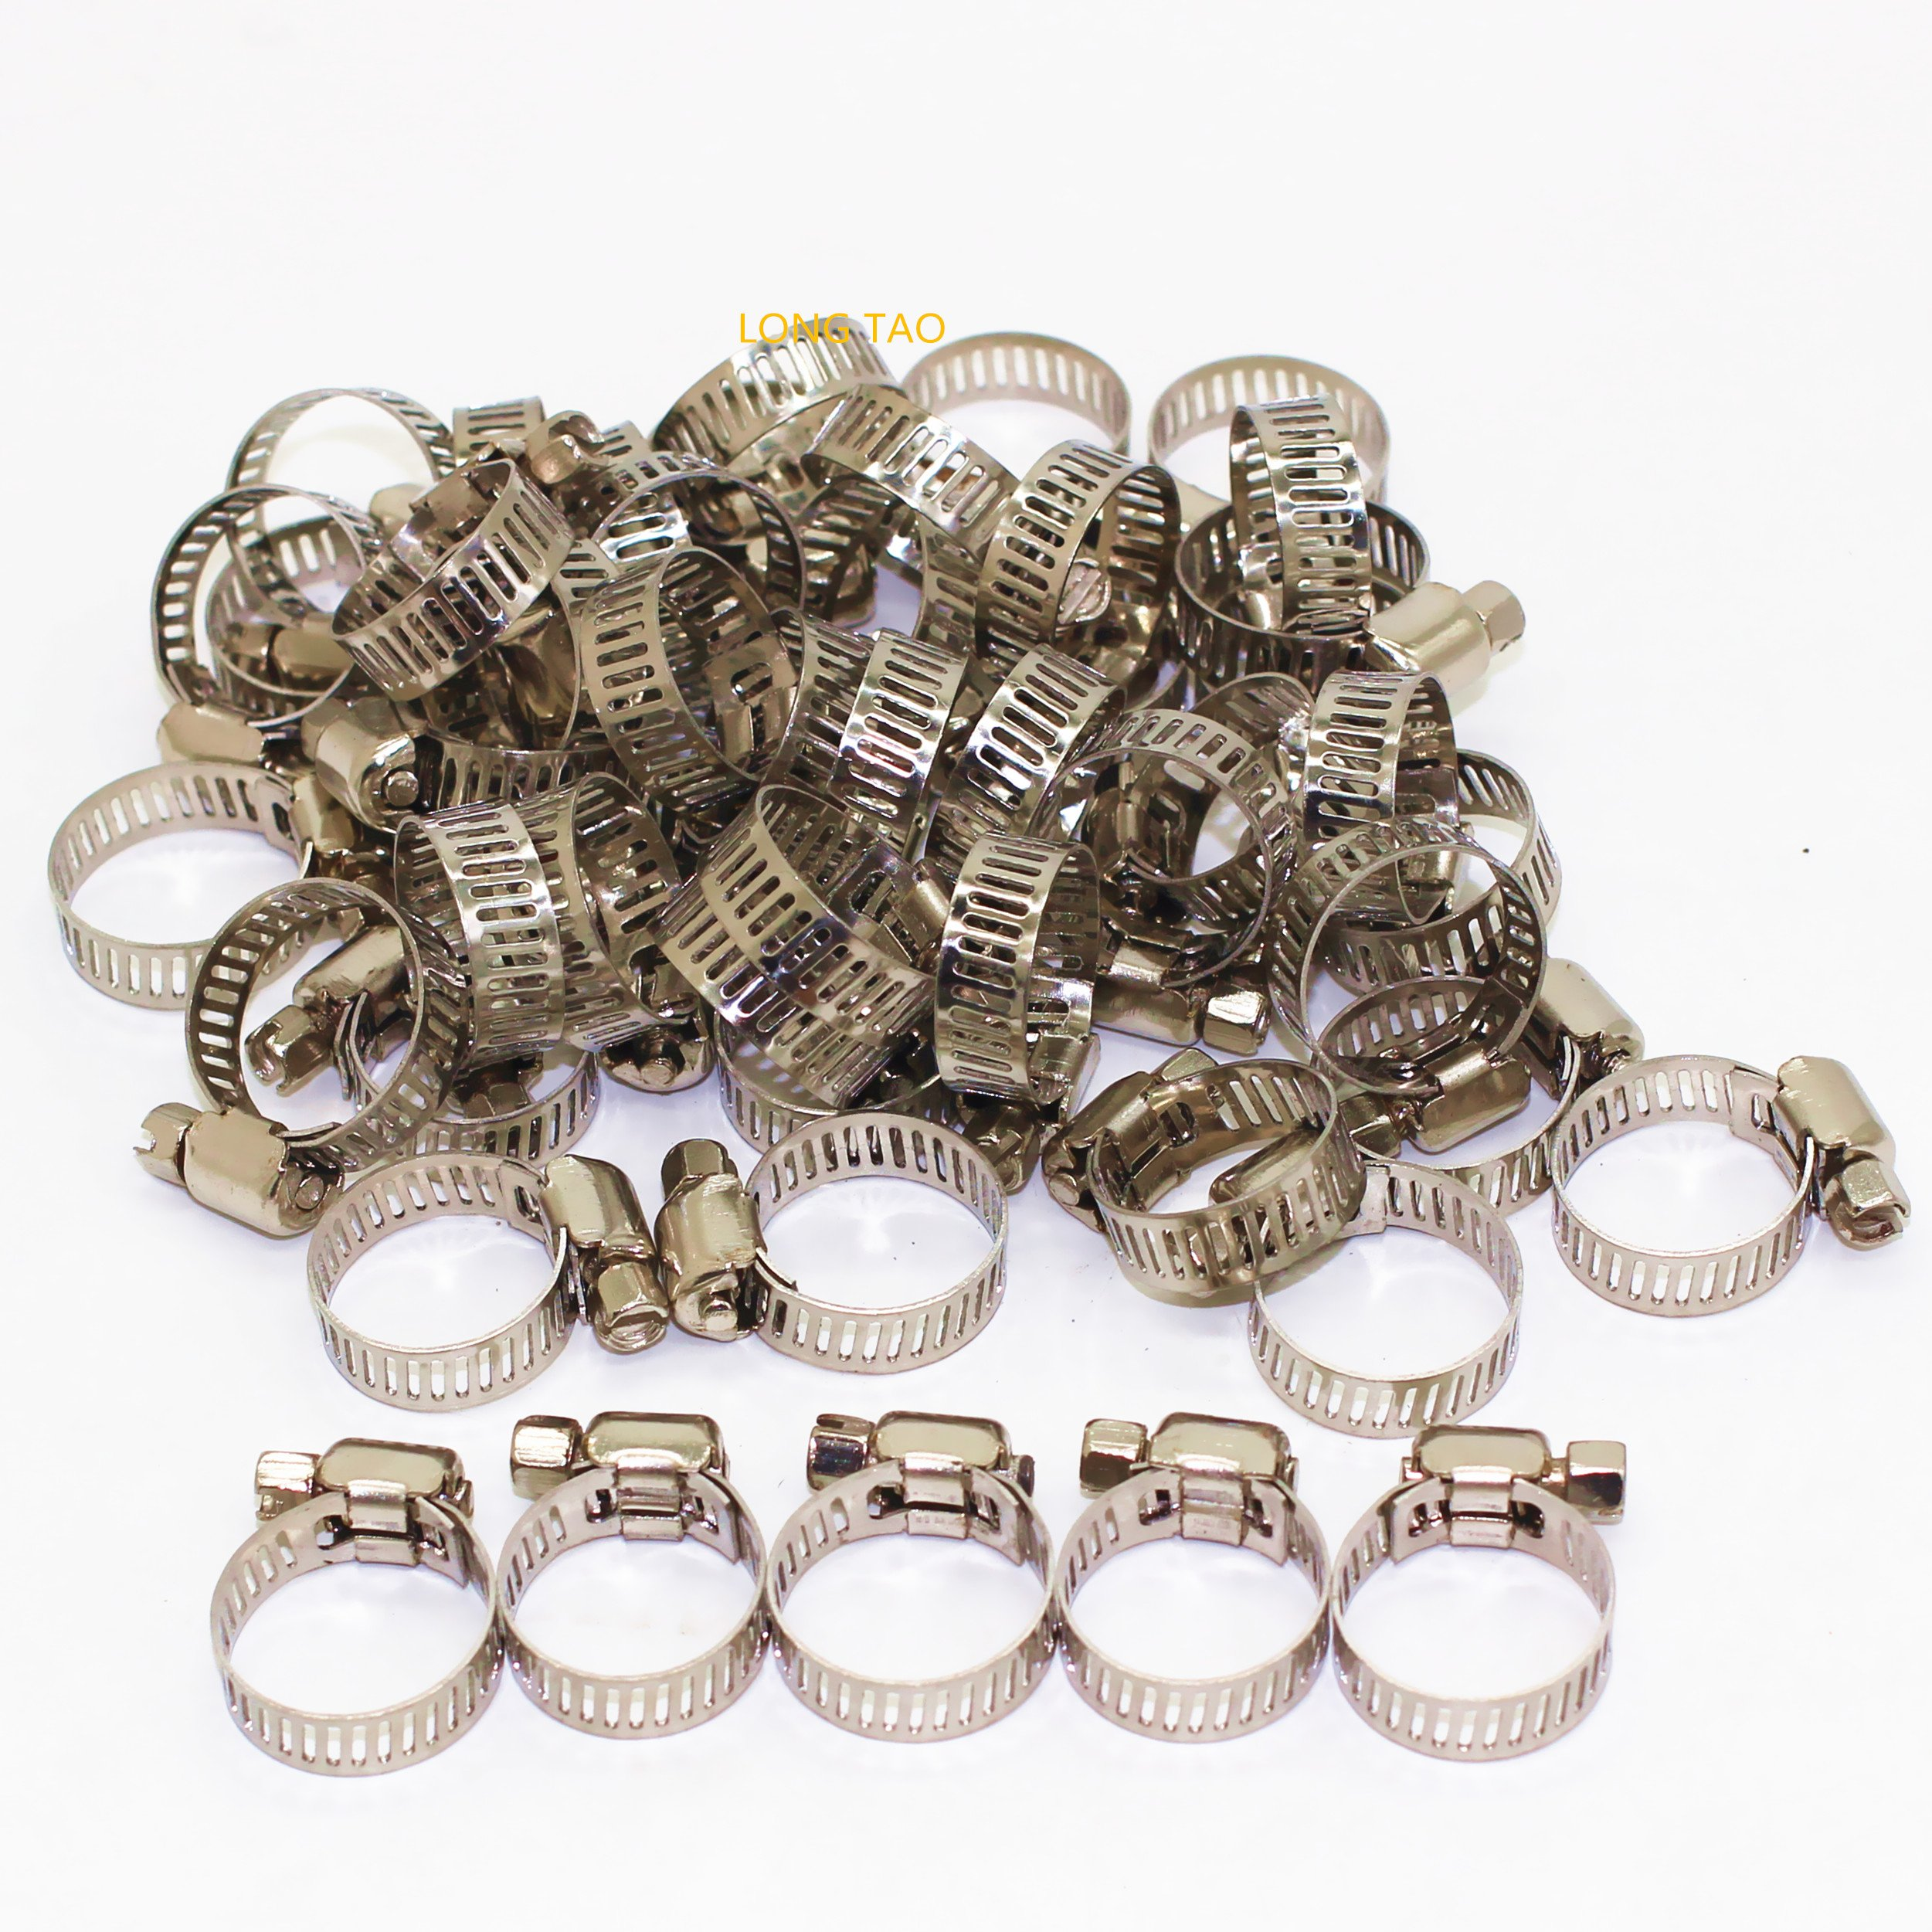 LONG TAO 13mm-19mm Stainless Steel Pipe Hose Clamp Line Pipe Clips Zinc Plated Screw Pack of 50pcs